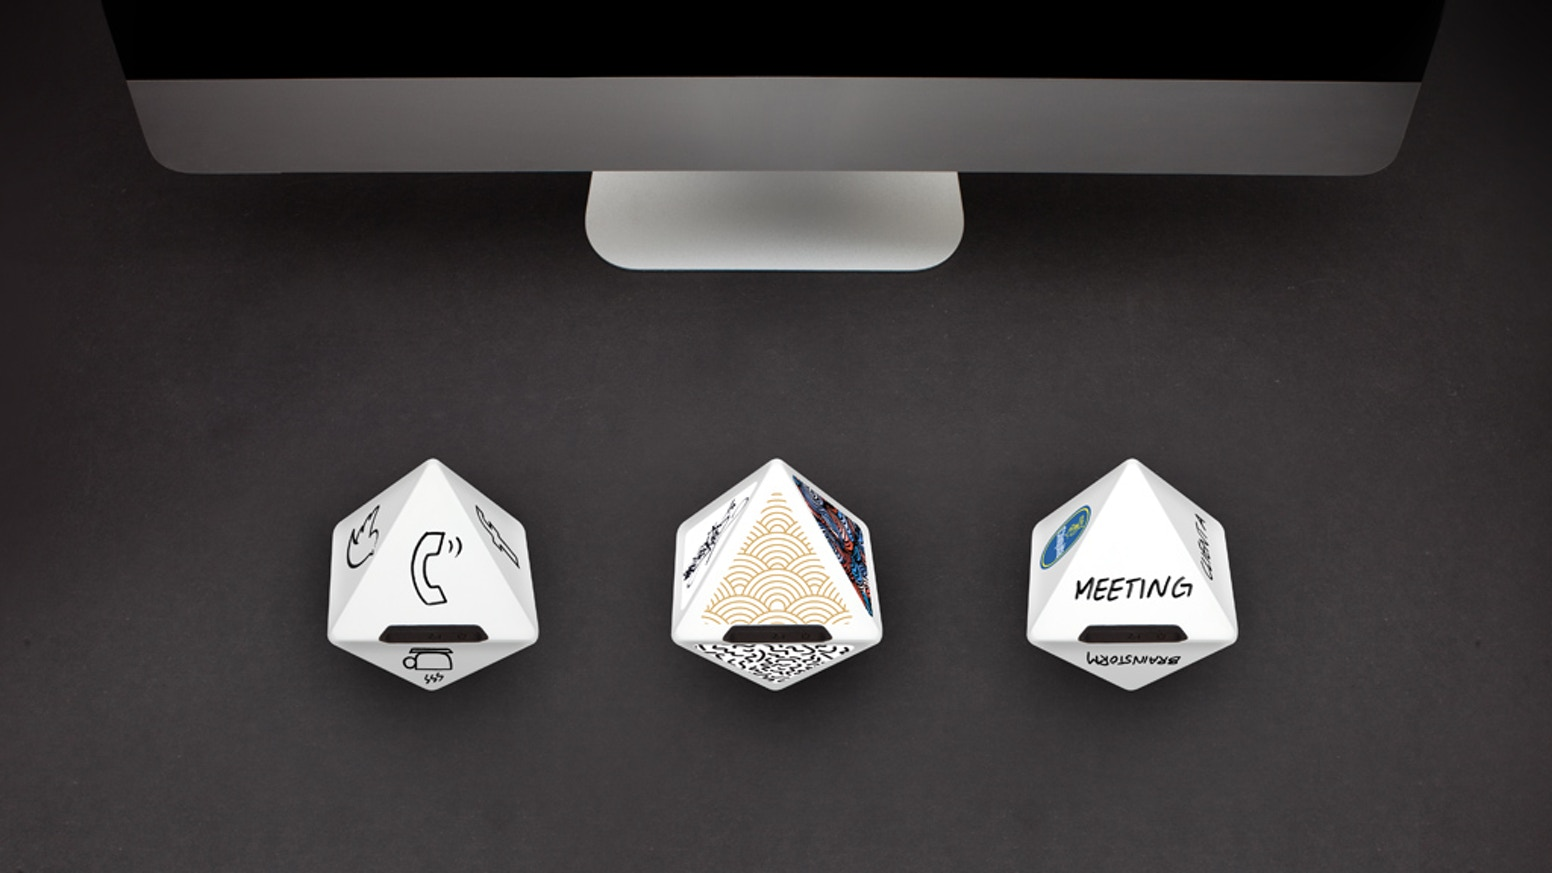 ZEI is a beautiful 8-sided device that makes time tracking instant and fun. Accurately track your activities with a simple flip.